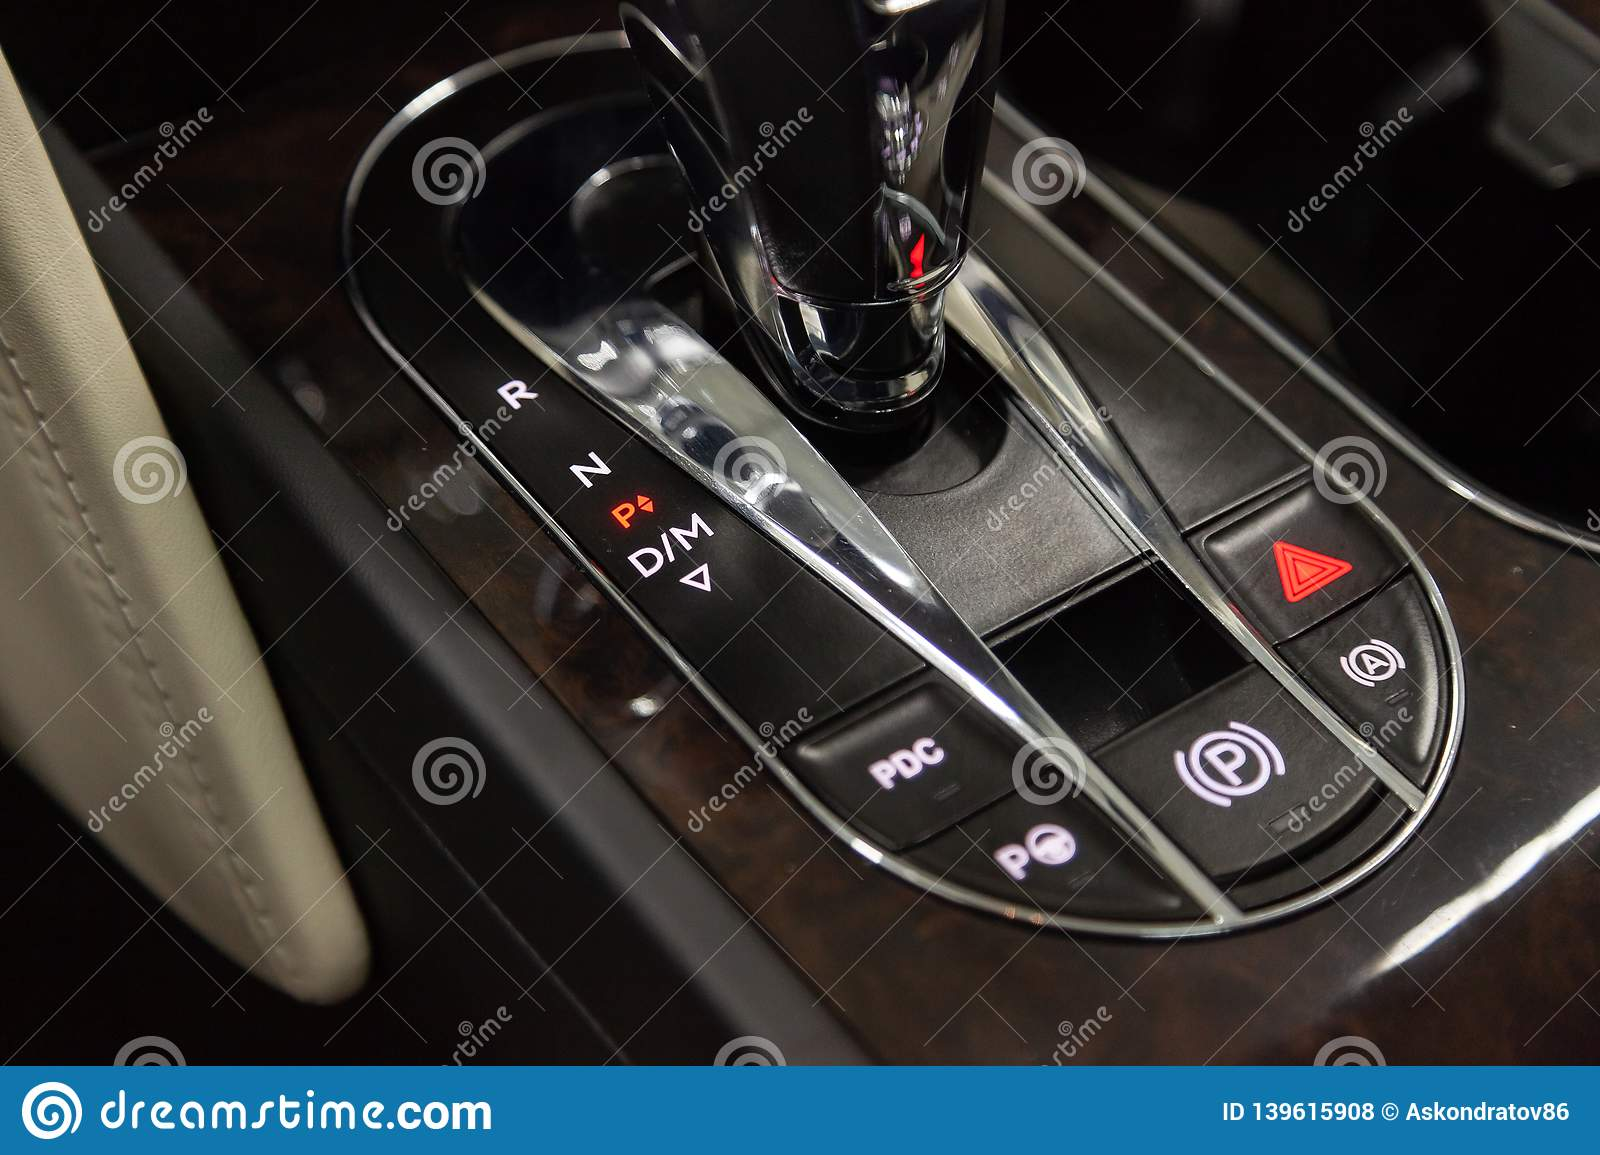 Interior View With Gear Selector Of Luxury Very Expensive New Black Bentley Bentayga Car Stands In The Washing Box Waiting For Editorial Stock Photo Image Of Crossover Light 139615908